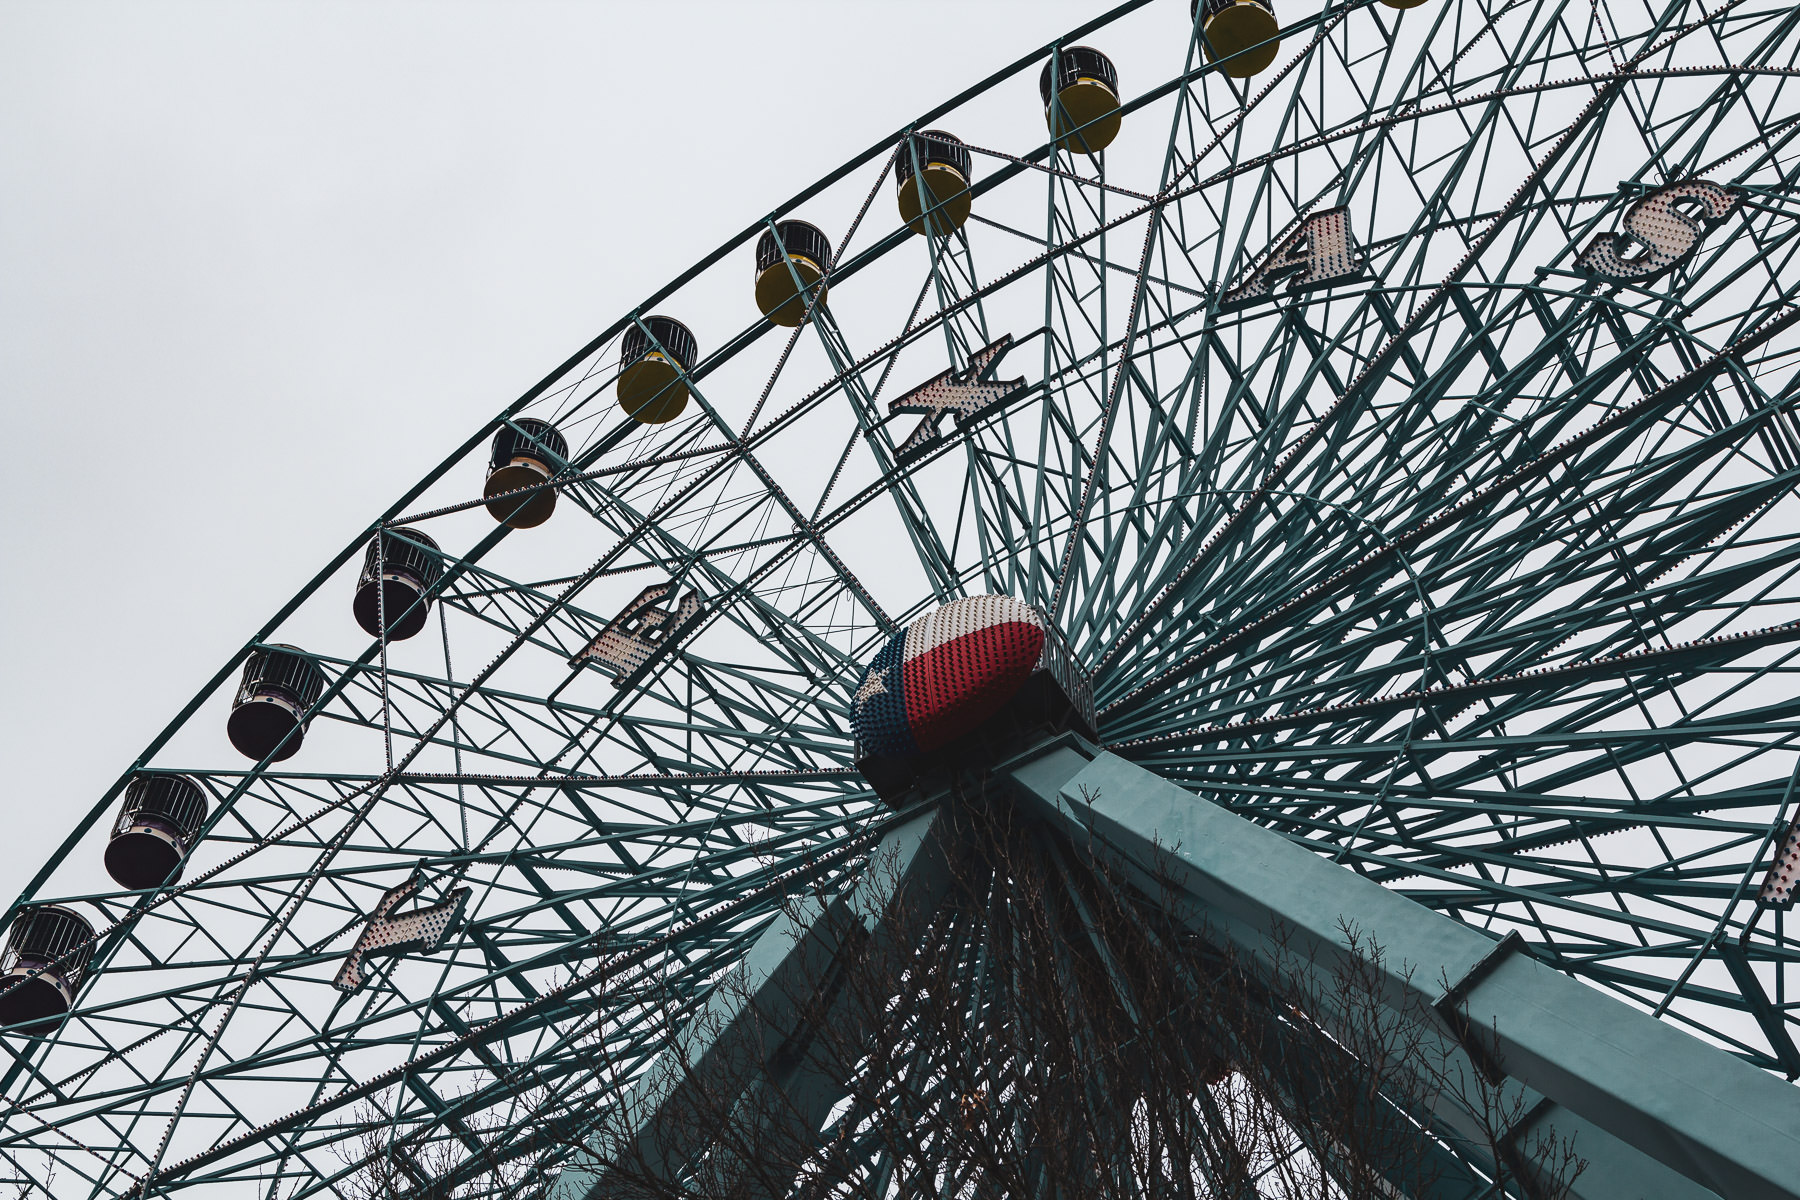 The Texas Star Ferris wheel rises into the overcast sky over Dallas' Fair Park.